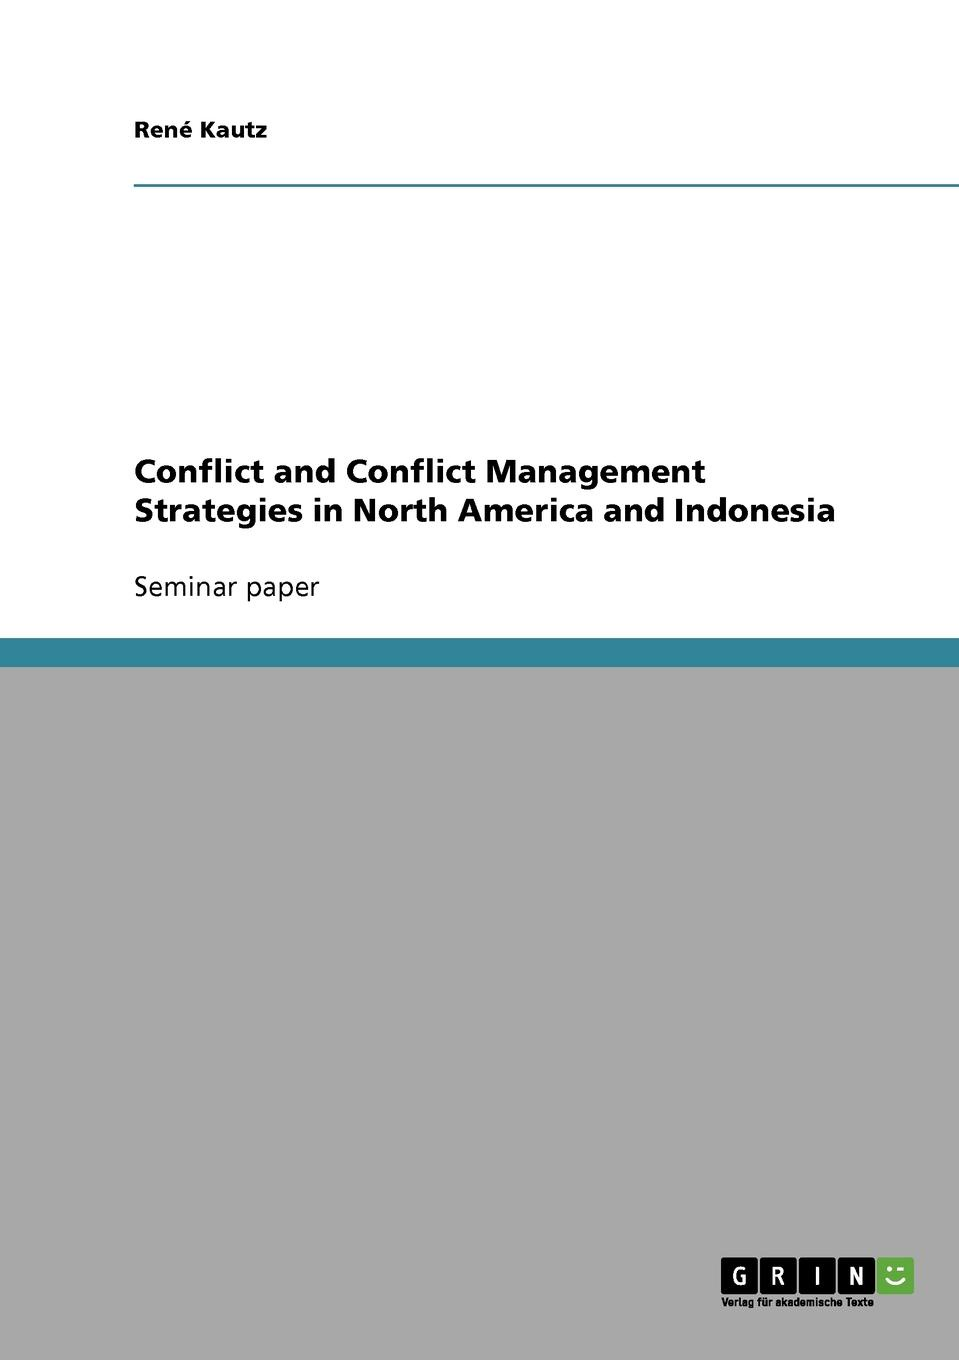 René Kautz Conflict and Conflict Management Strategies in North America and Indonesia baden eunson conflict management